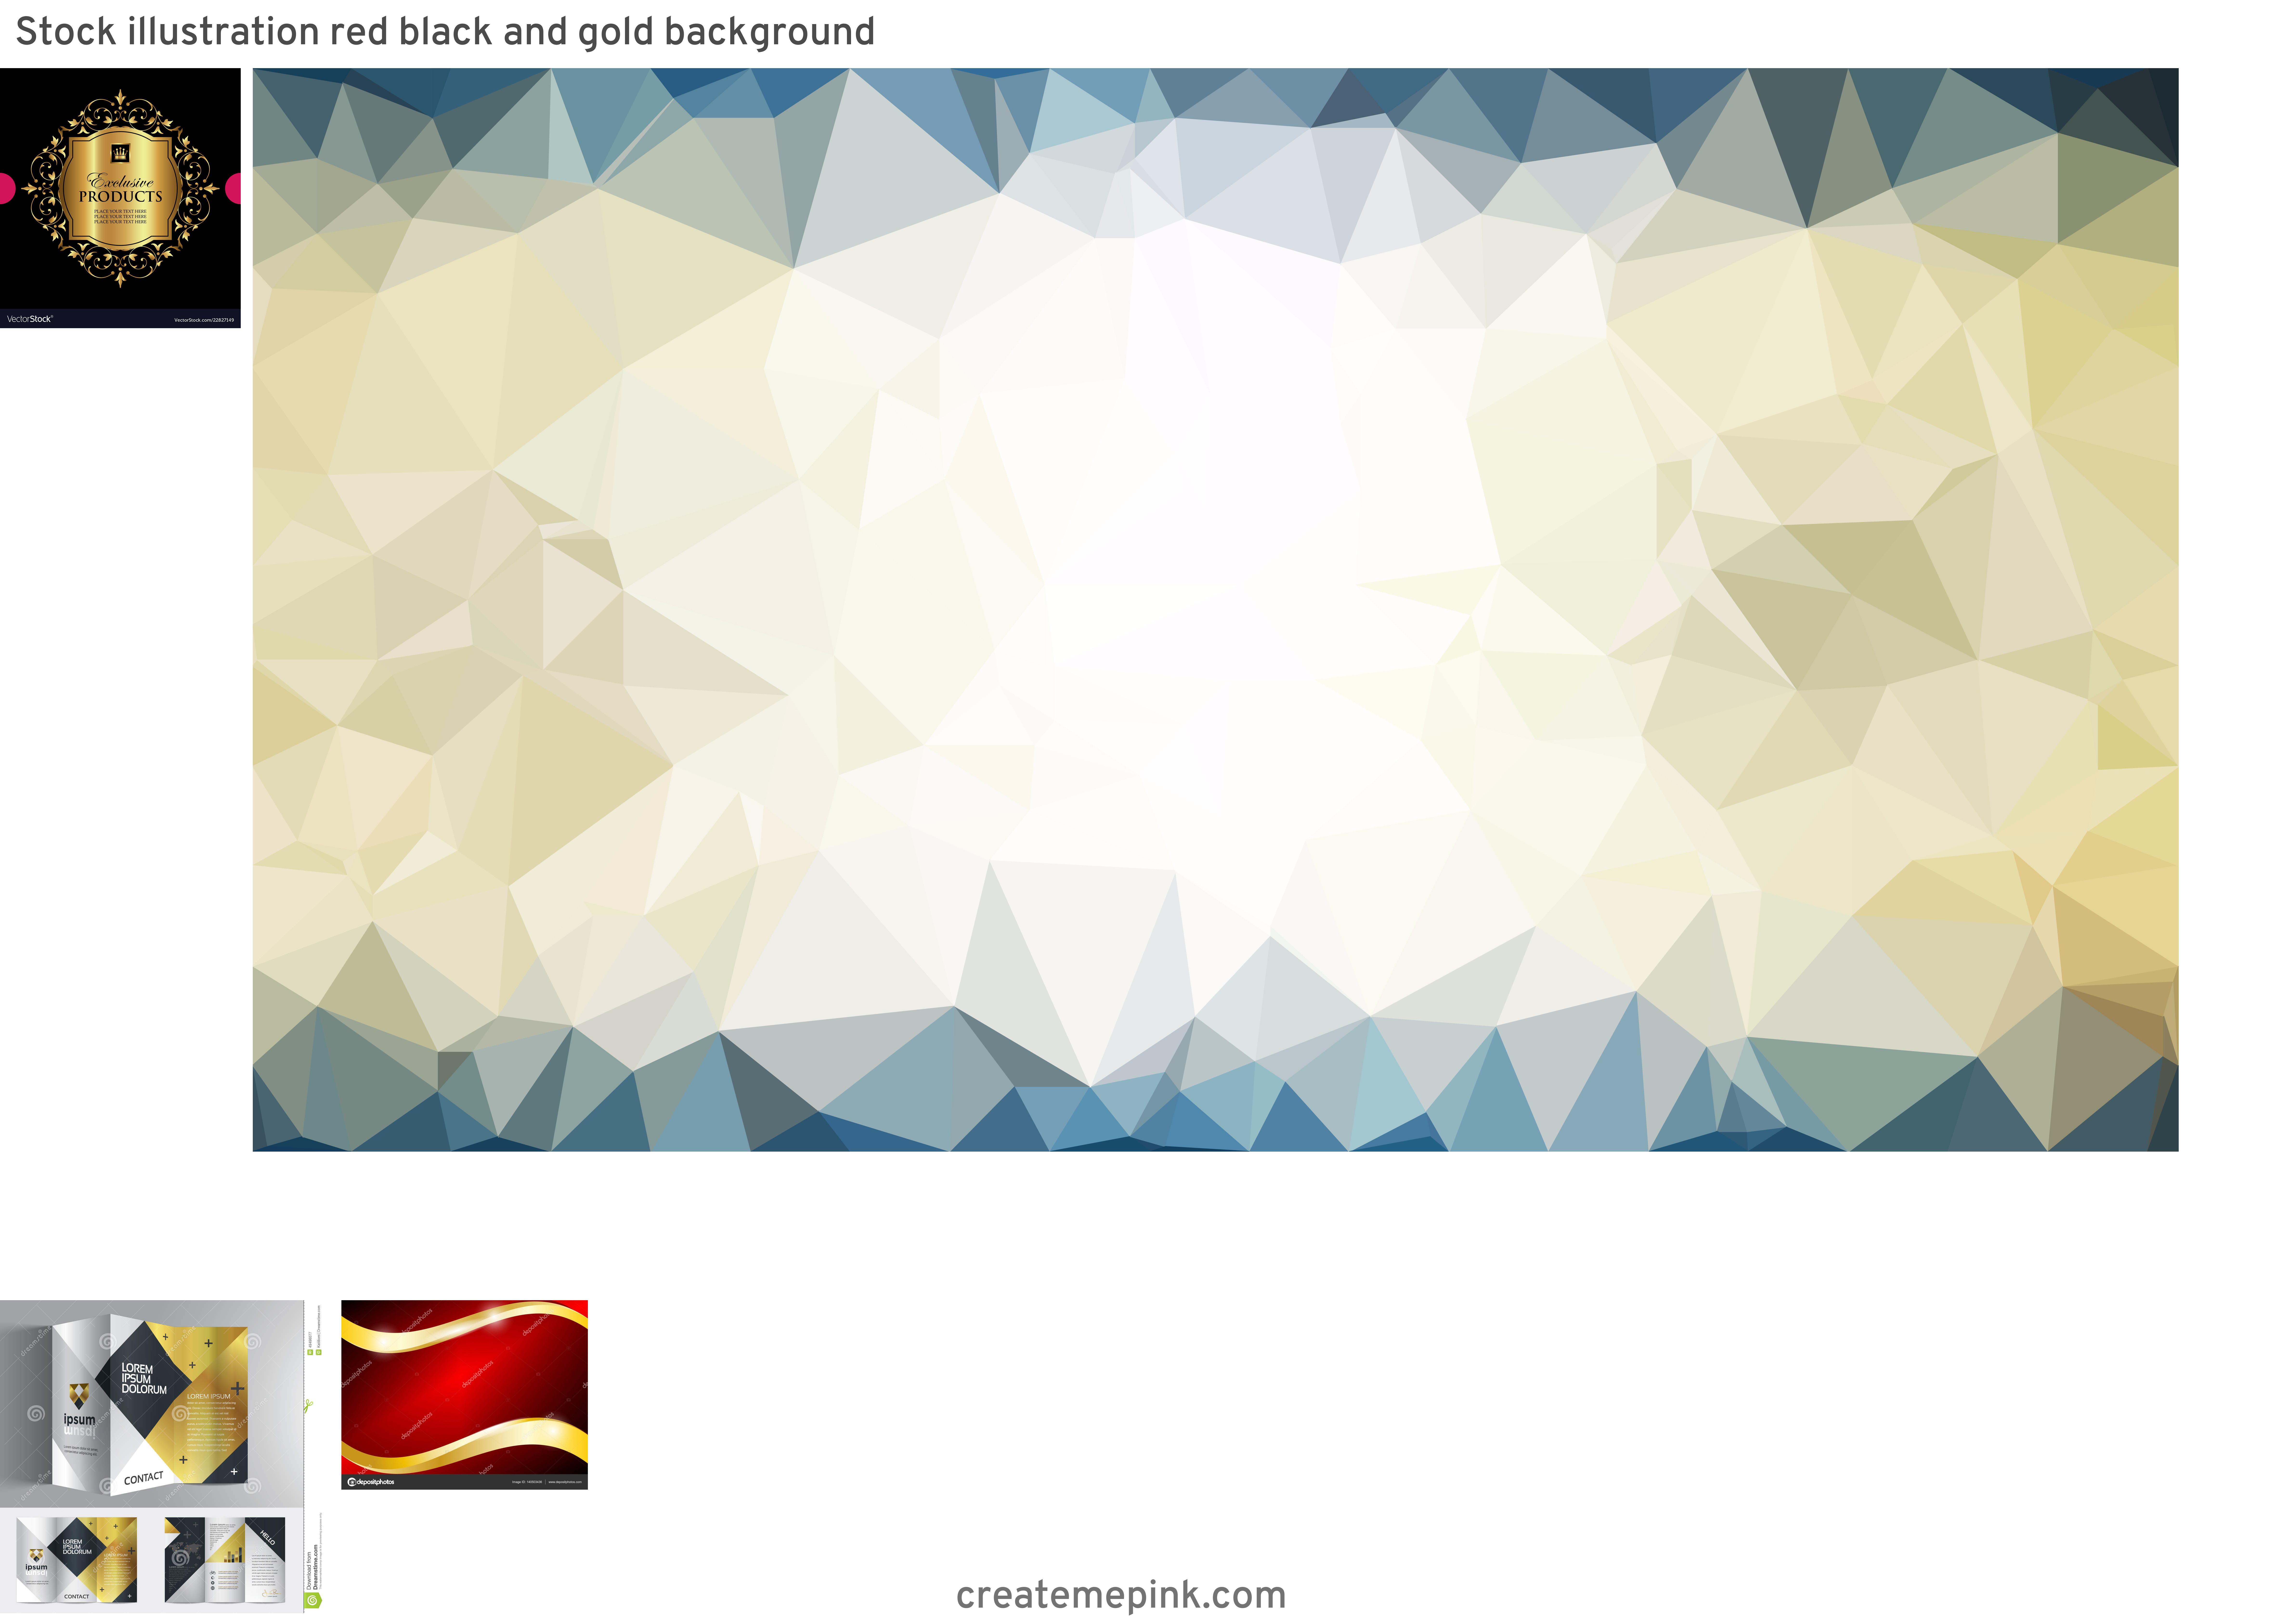 Gold Graphic Design Vectors: Stock Illustration Red Black And Gold Background